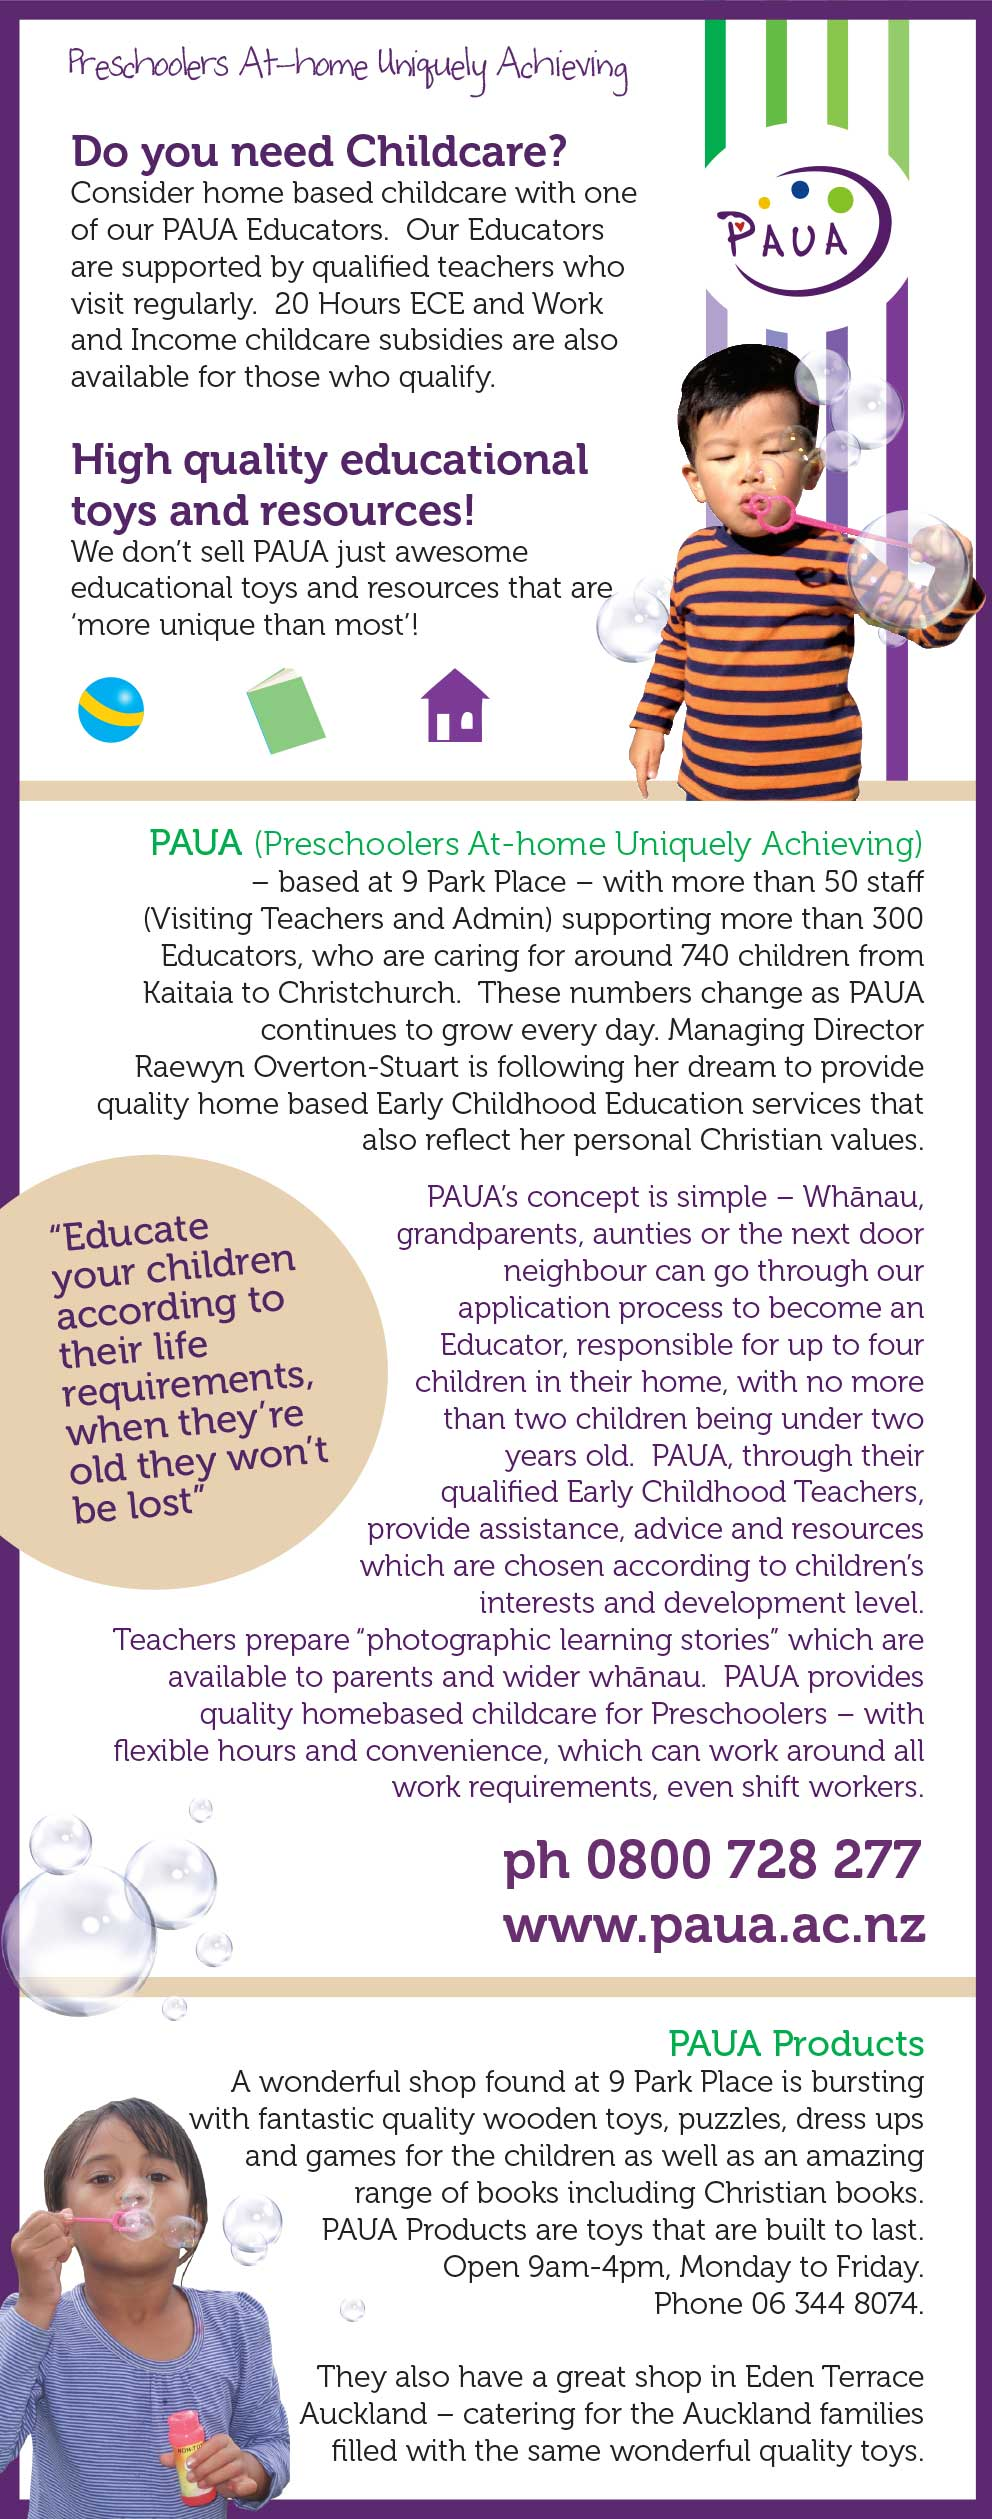 PAUA Products, Wanganui, children's educational toys and resources, inspire, play, learn create. Educate. online shop